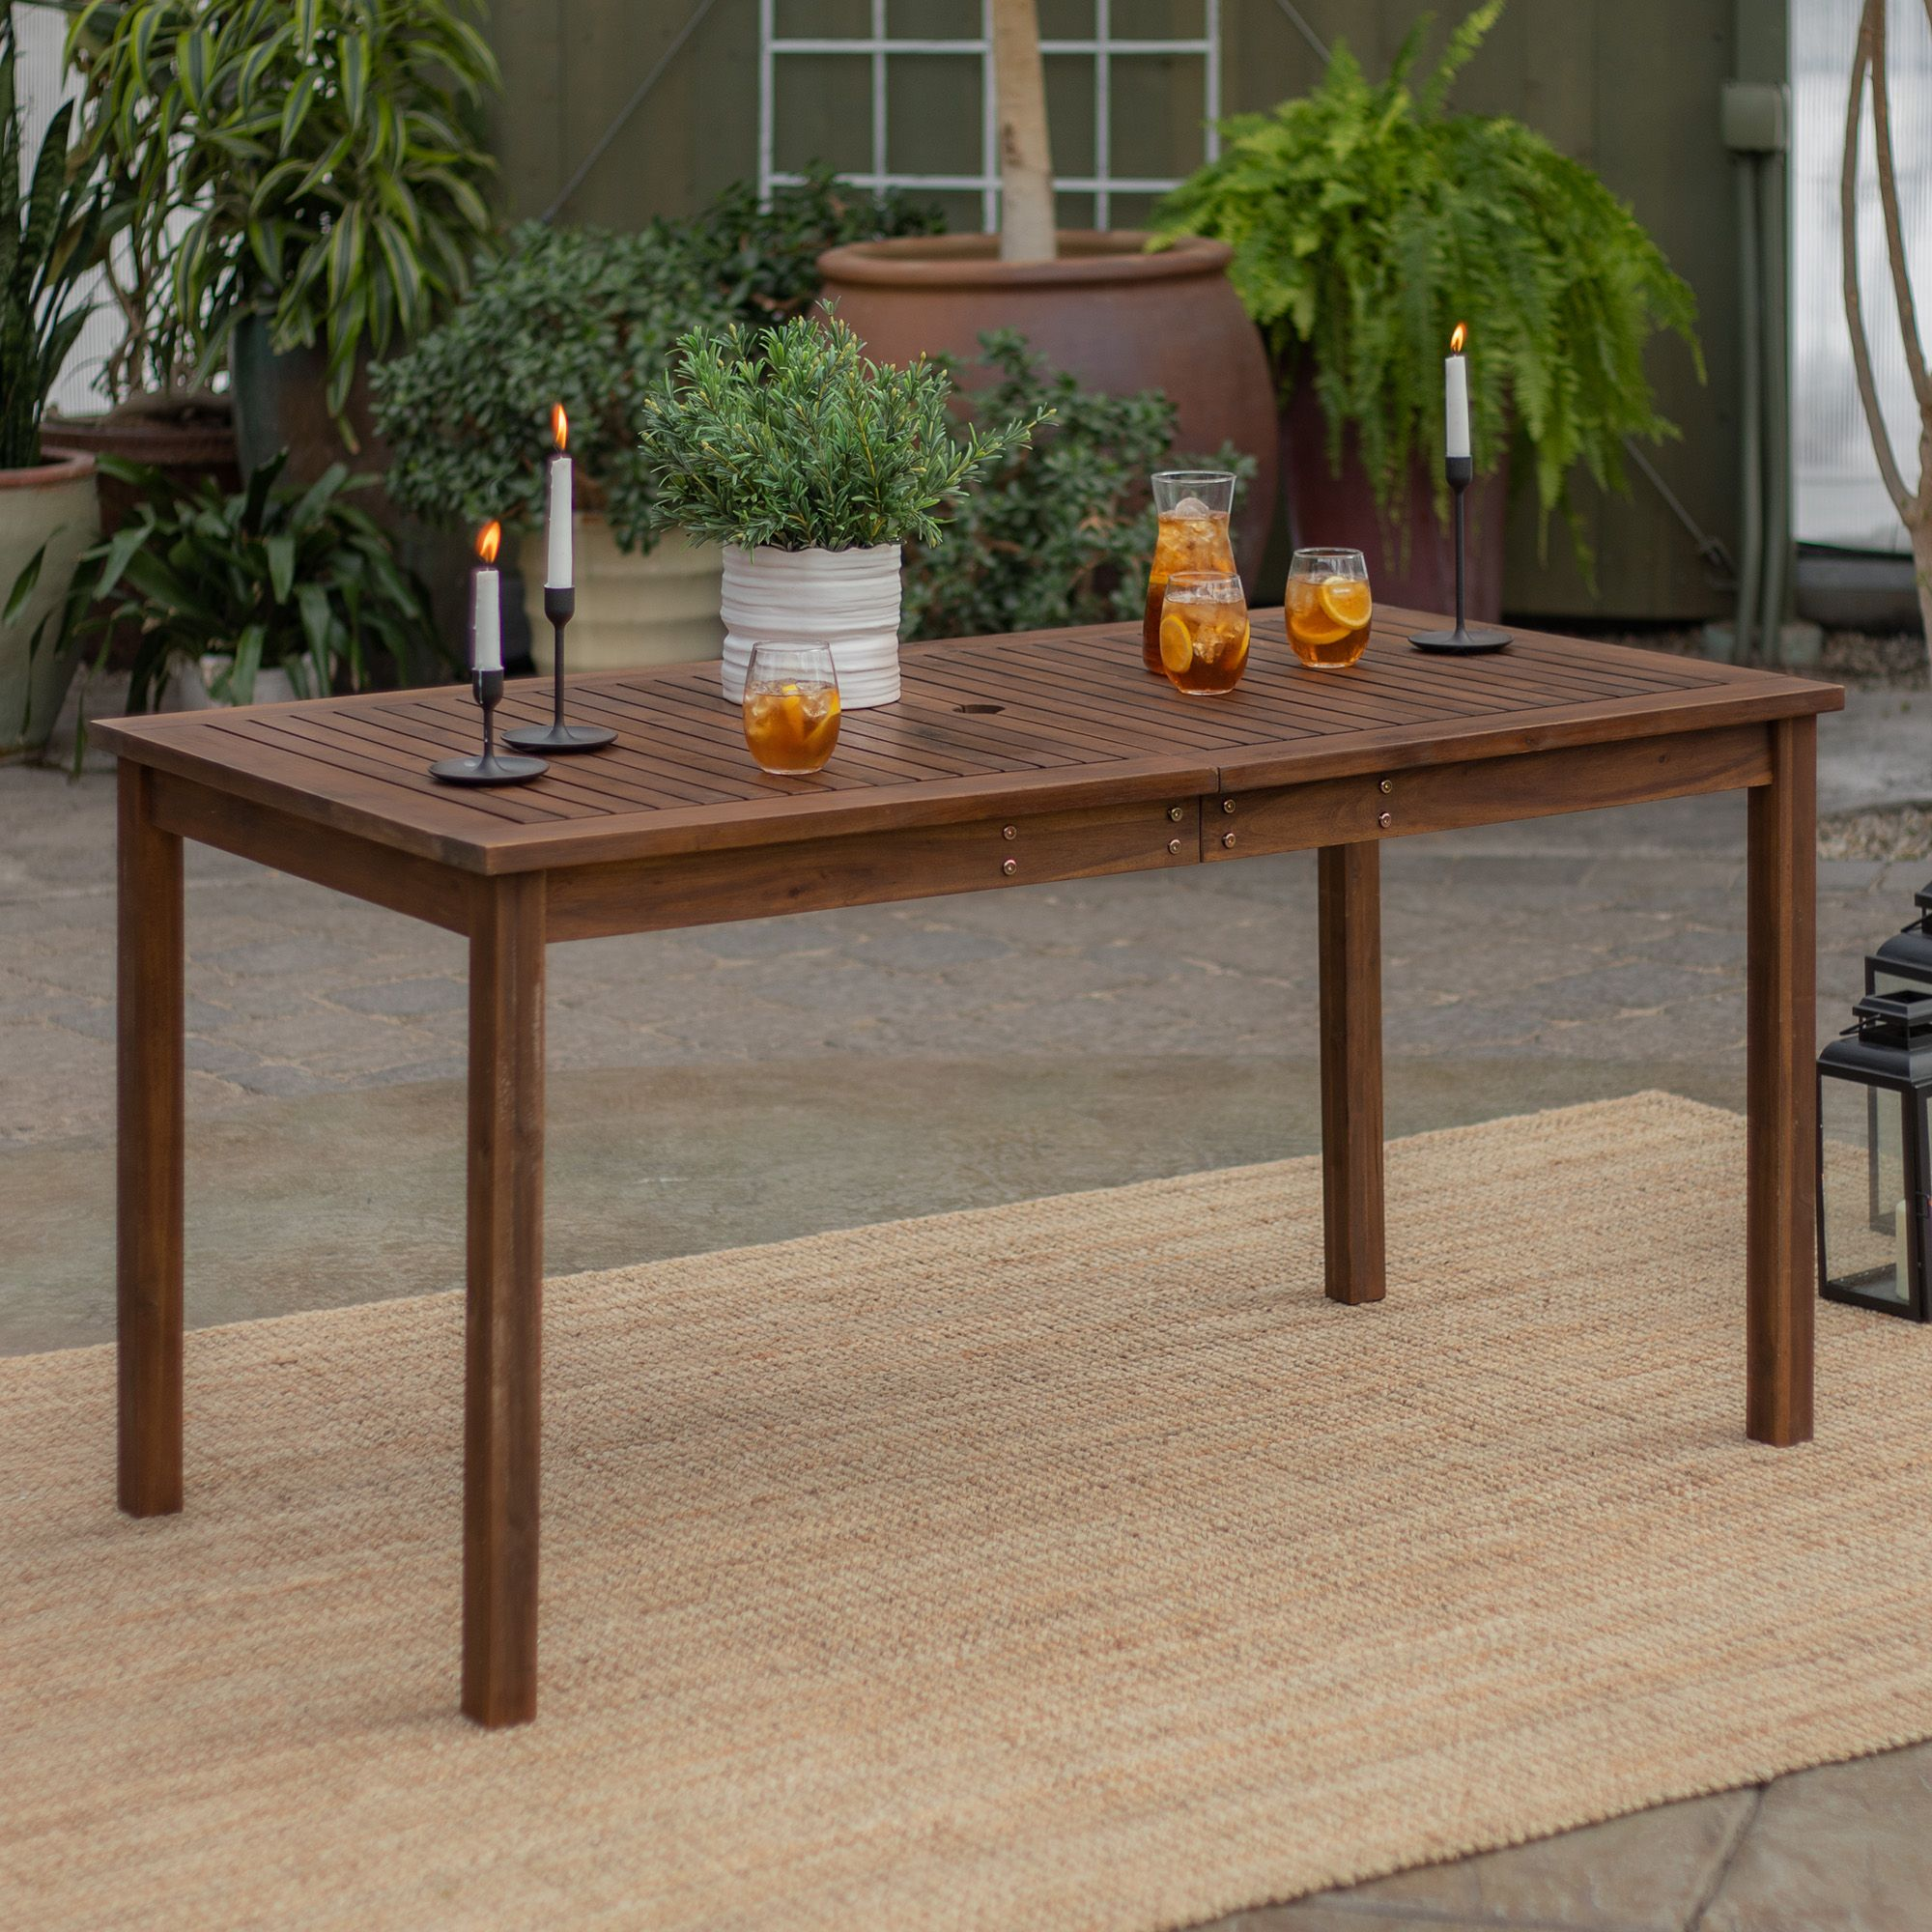 W. Trends Acacia Wood Outdoor Dining Table   Dark Brown